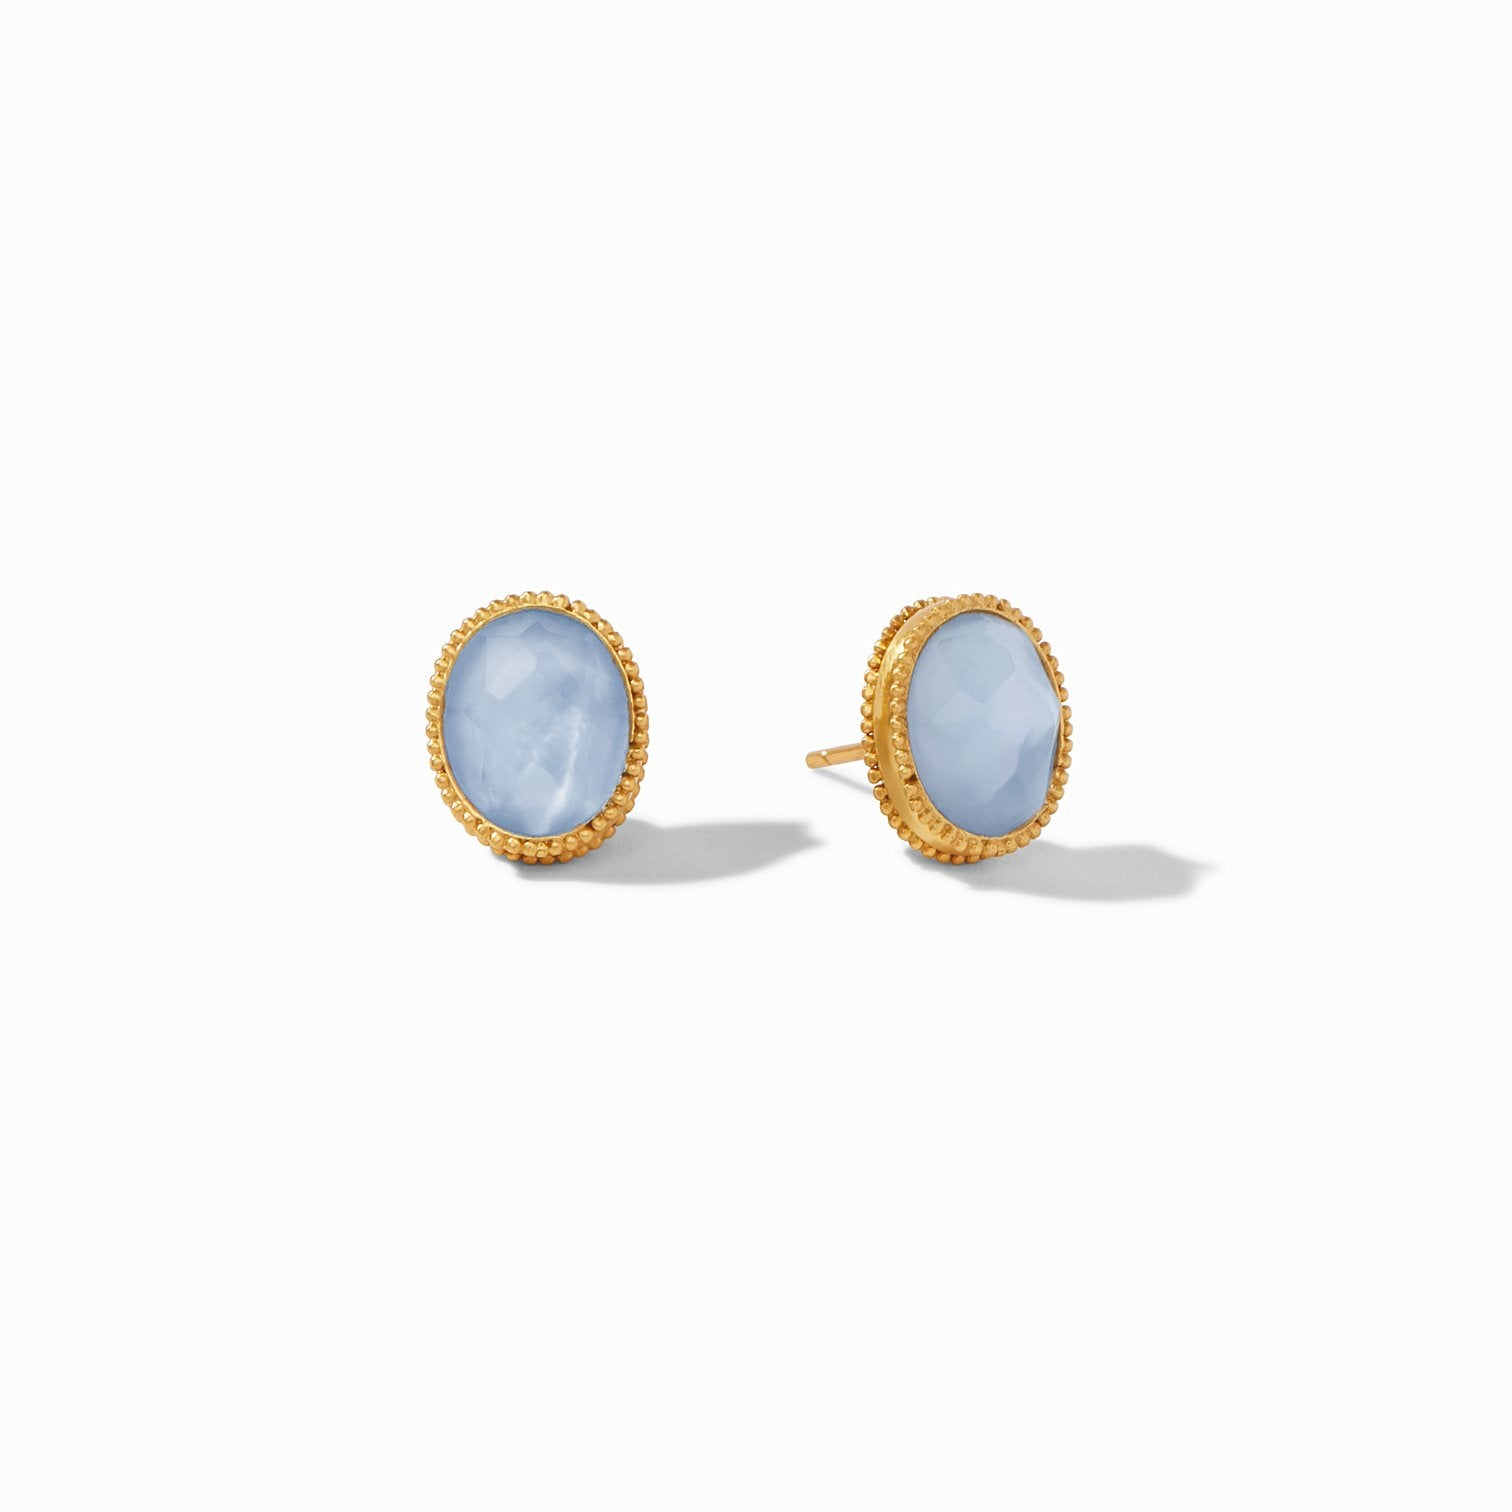 JULIE VOS -  VERONA COLLECTION Verona Stud blue